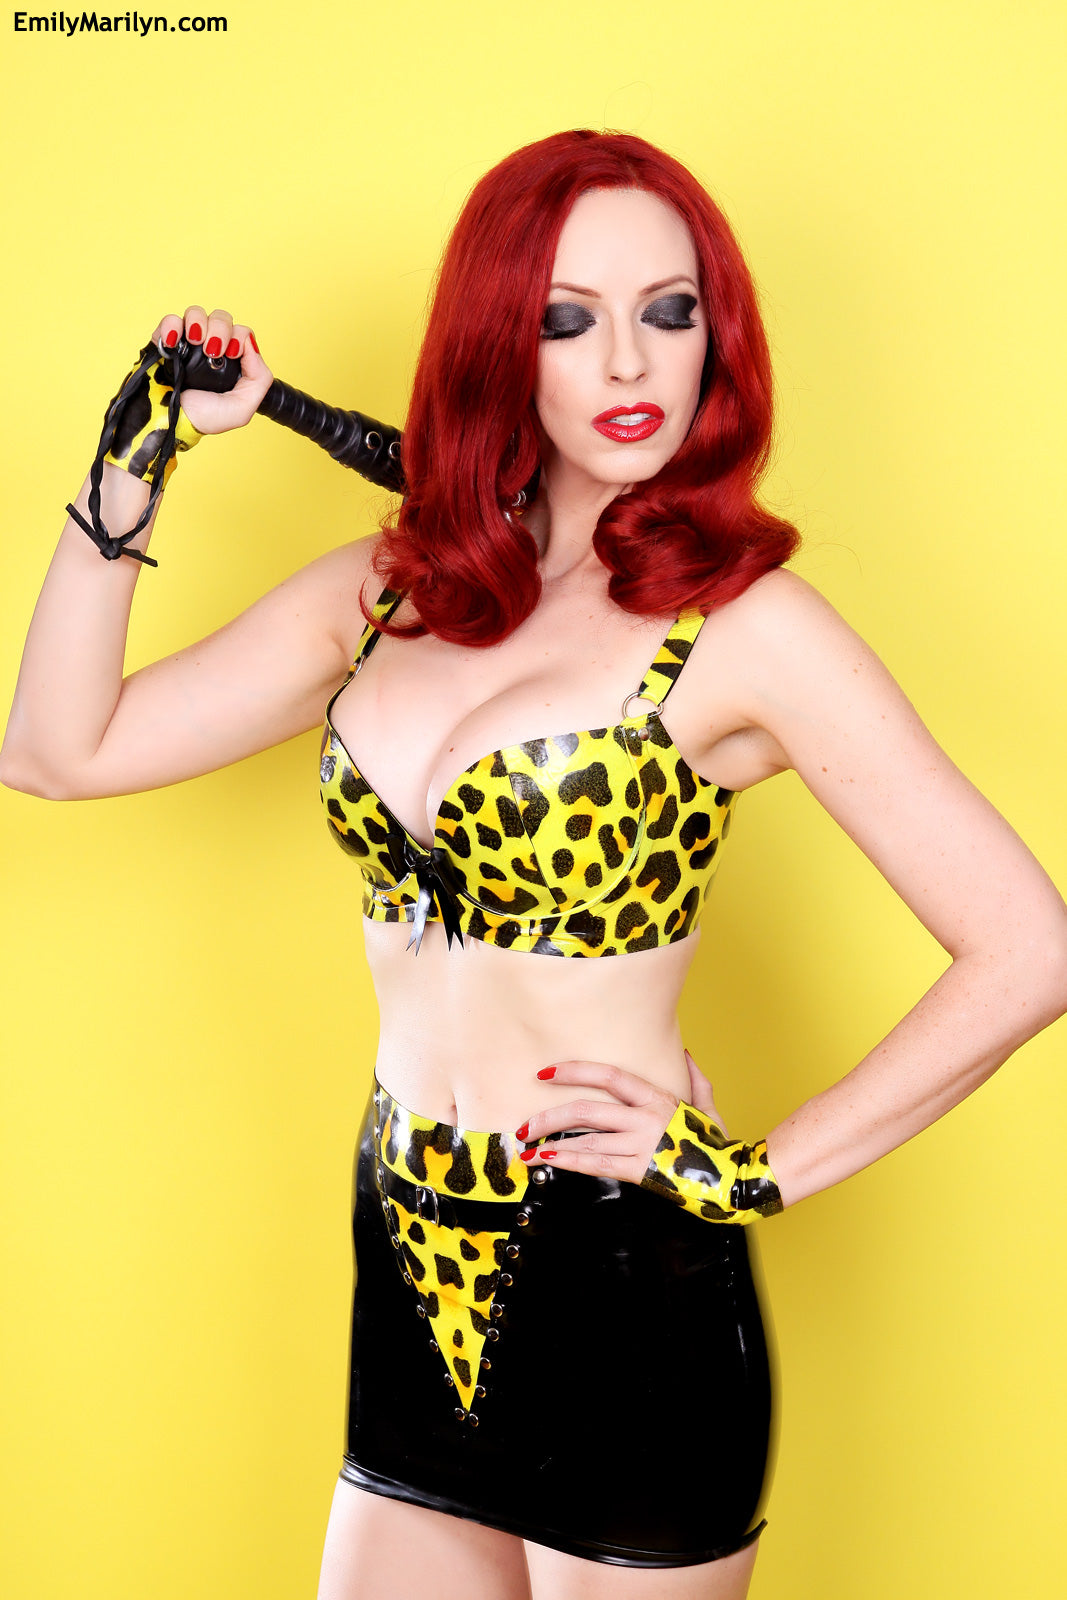 Cheetah latex push-up bra